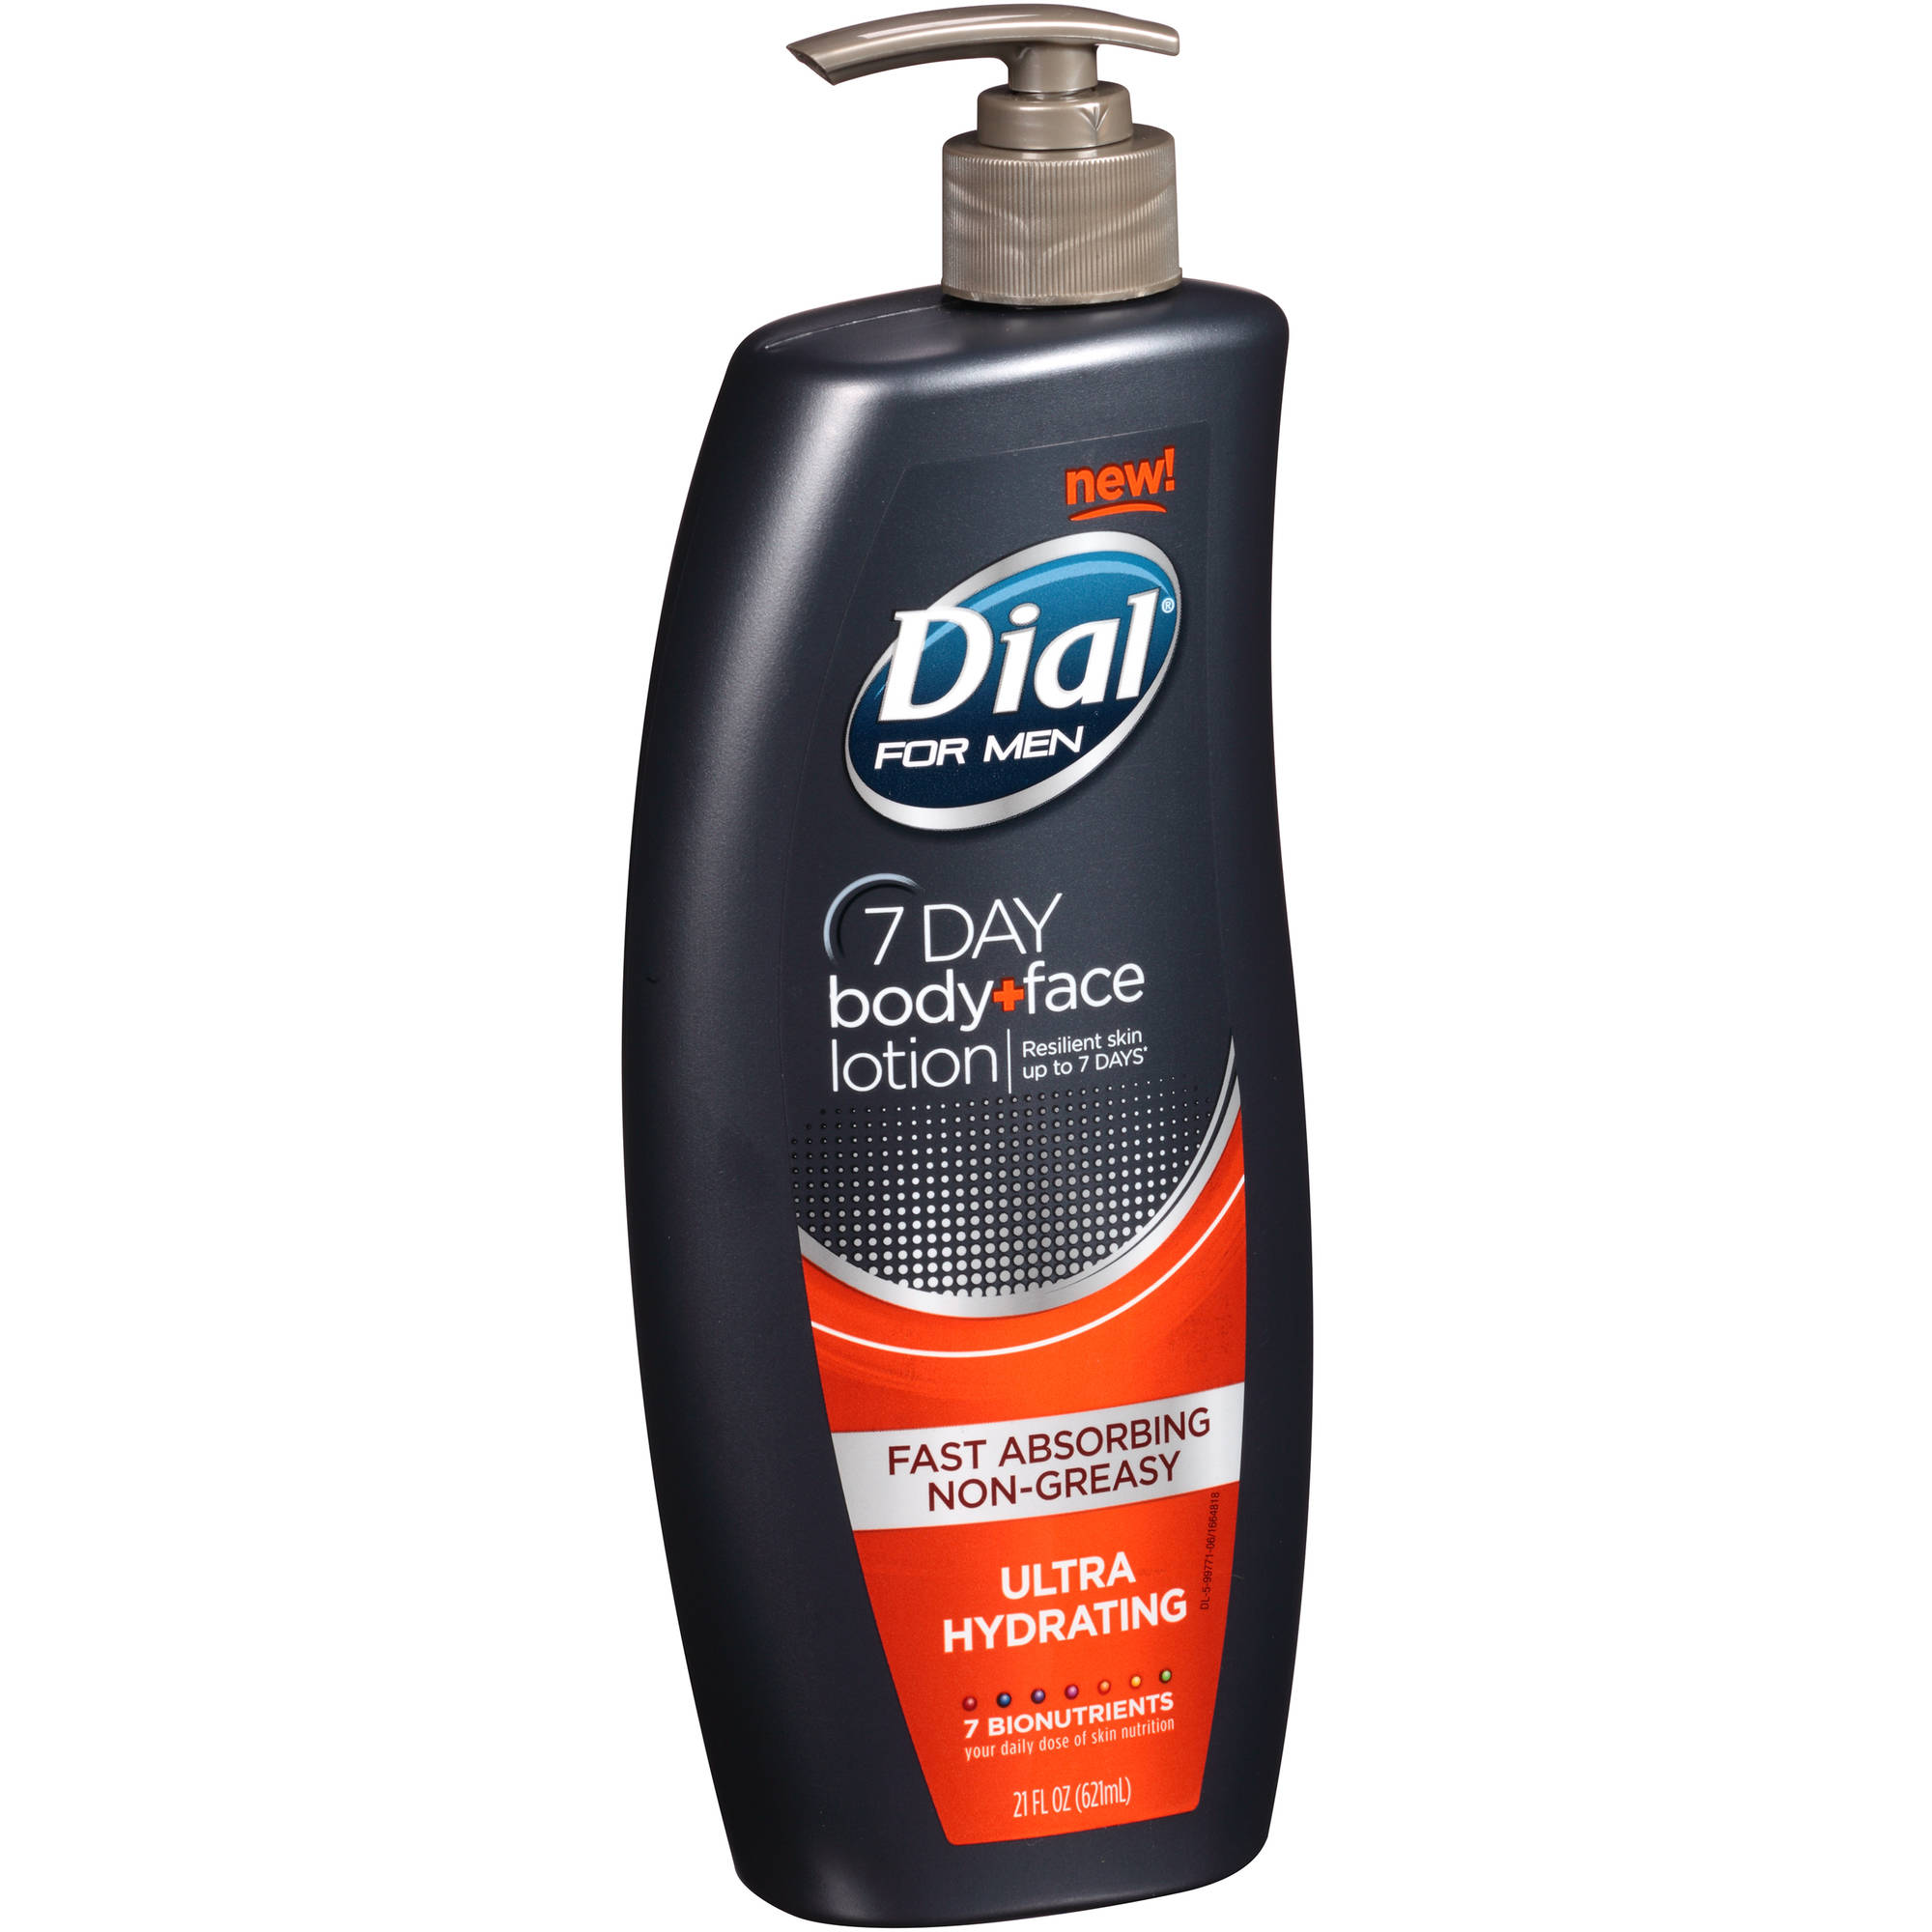 Dial For Men Nutriskin Ultra Hydrating Body & Hand Lotion, 21 oz